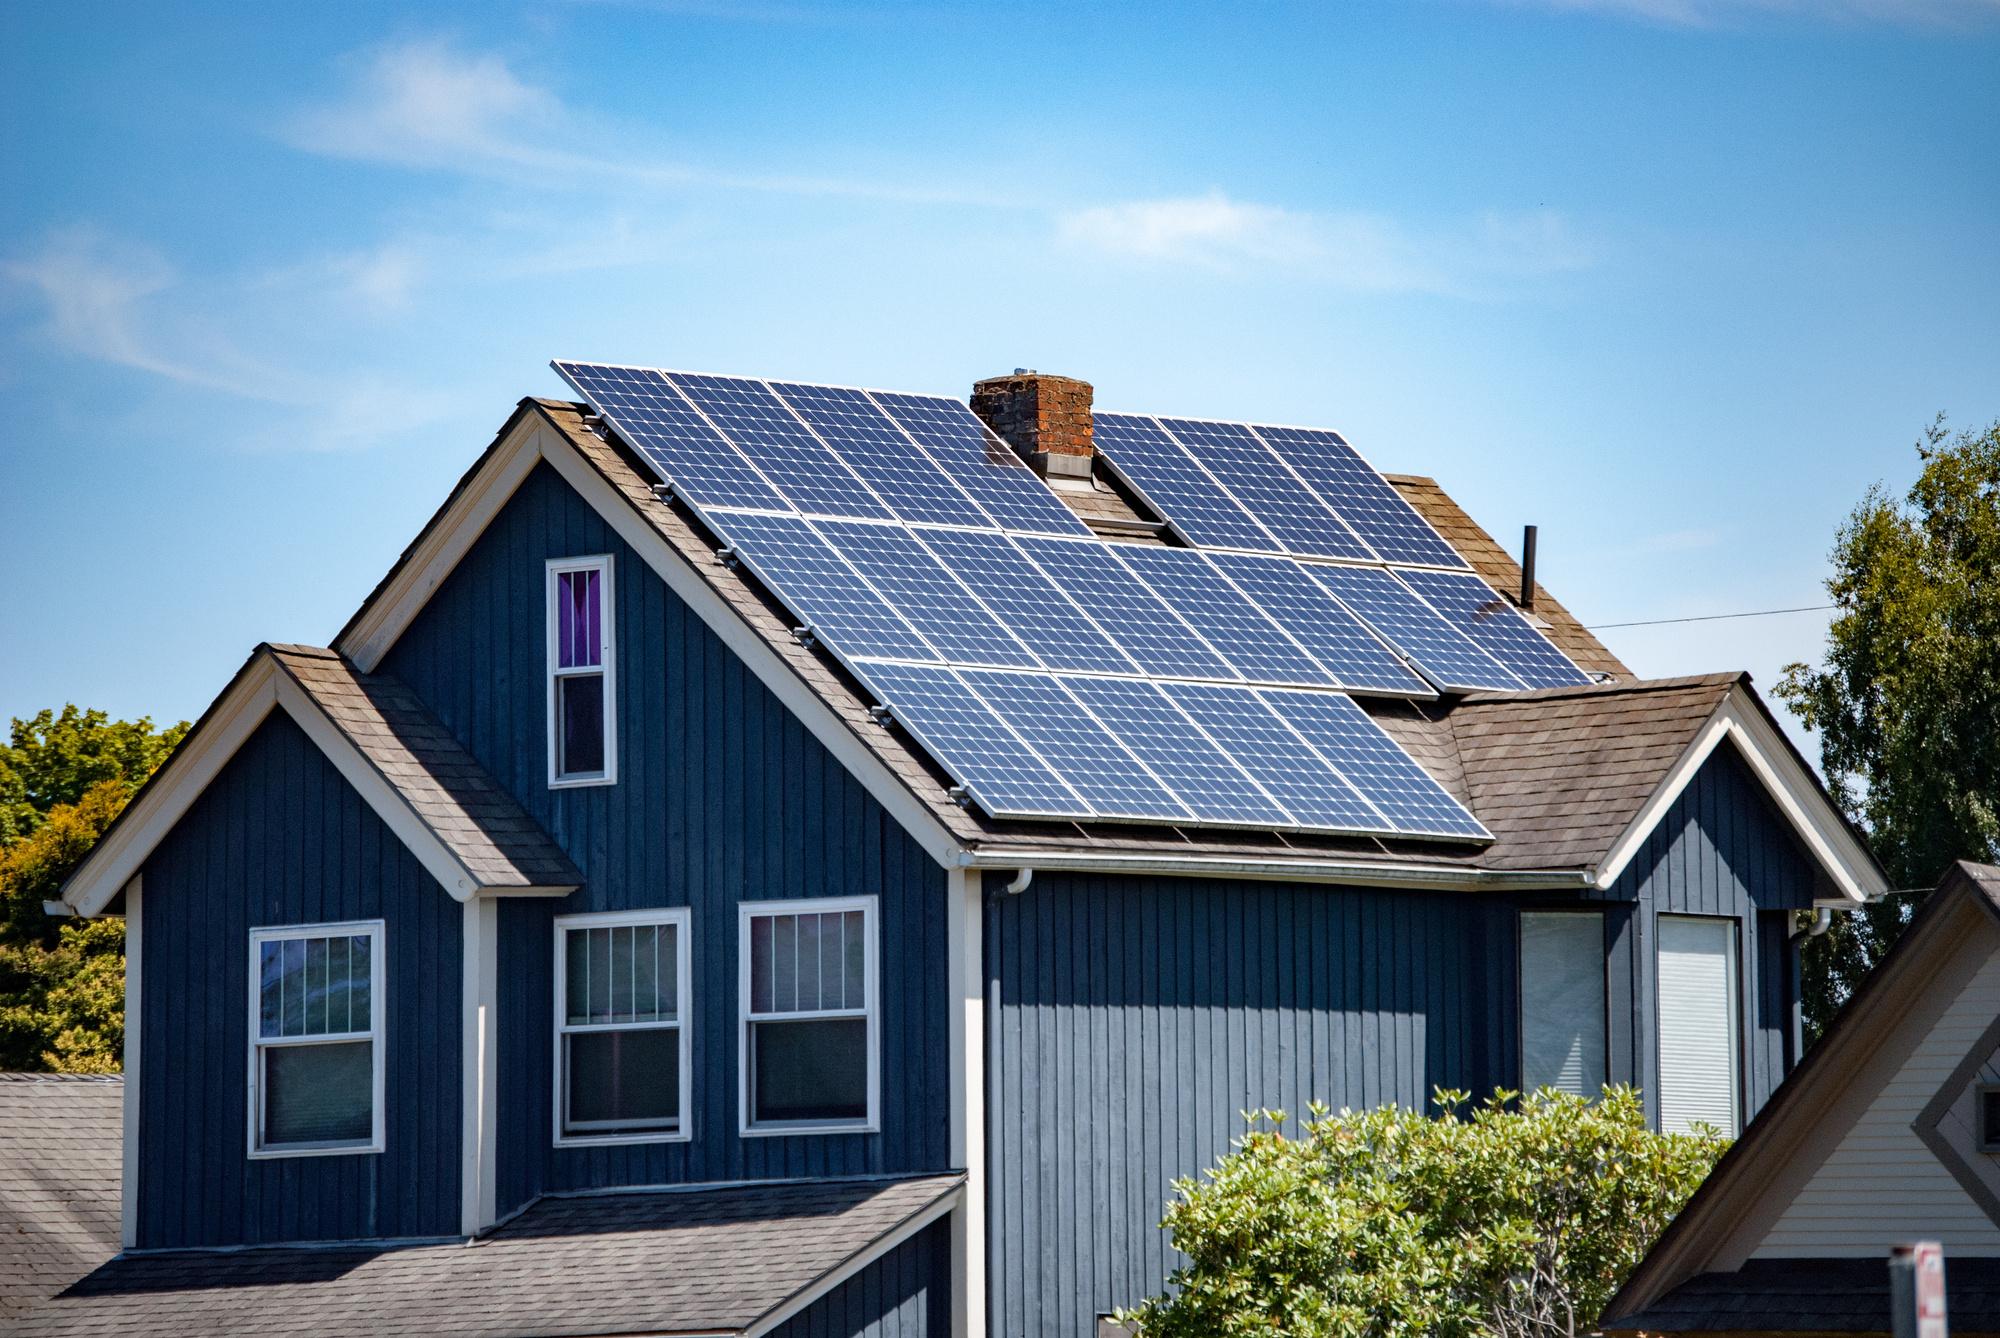 7 Small Changes You Can Make to Create a More Eco-Friendly Home